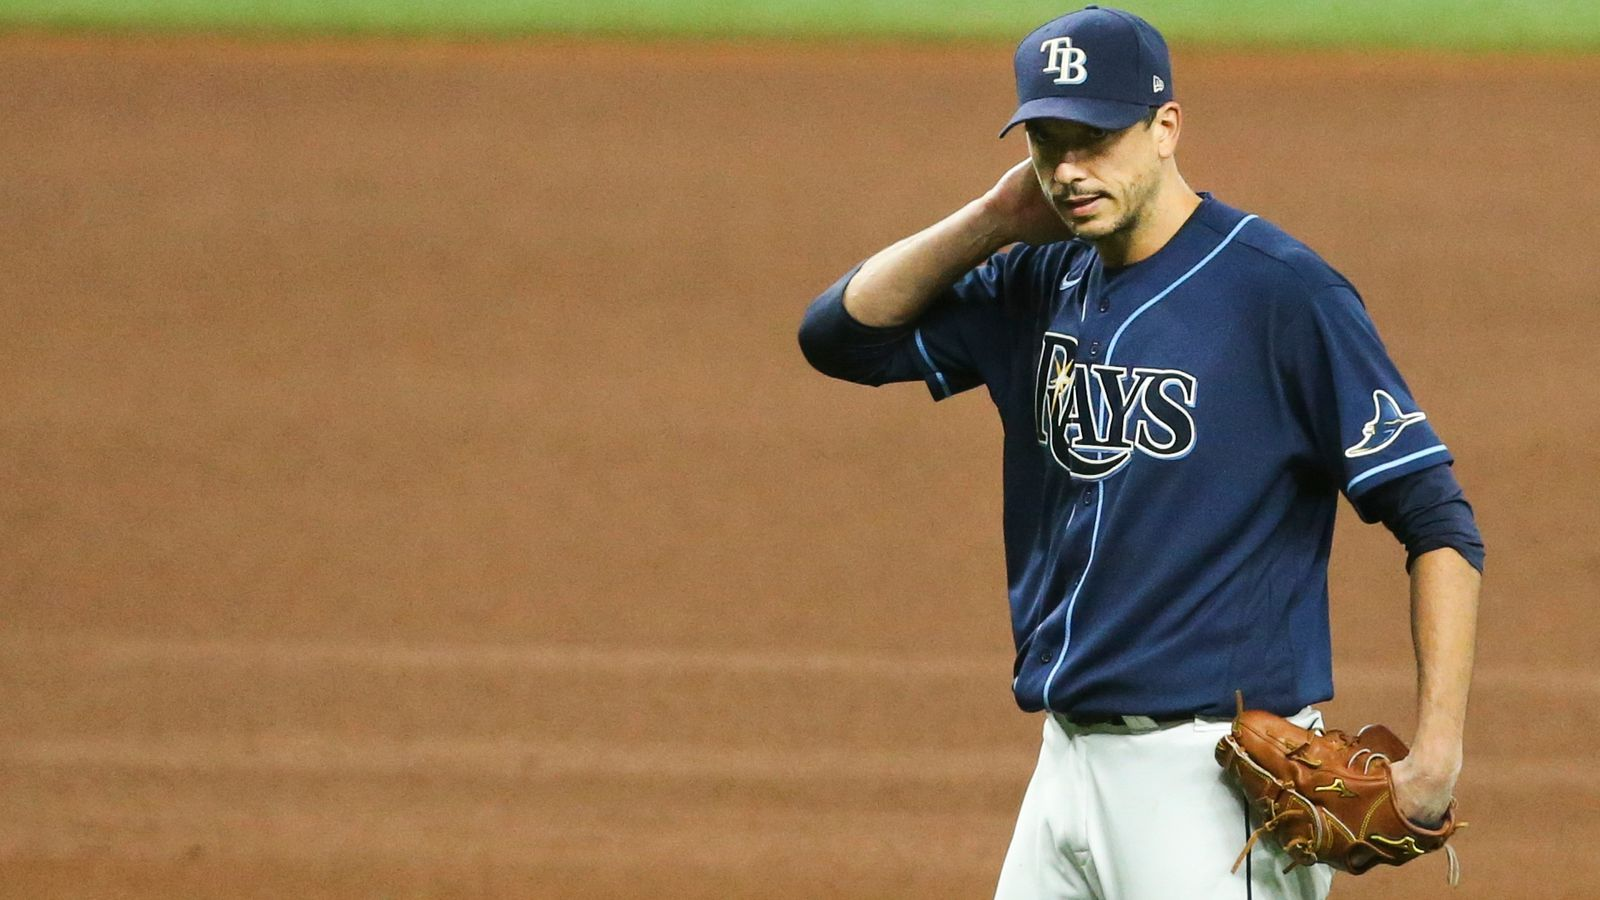 What you need to know about Wednesday's Rays-Yankees ALDS game